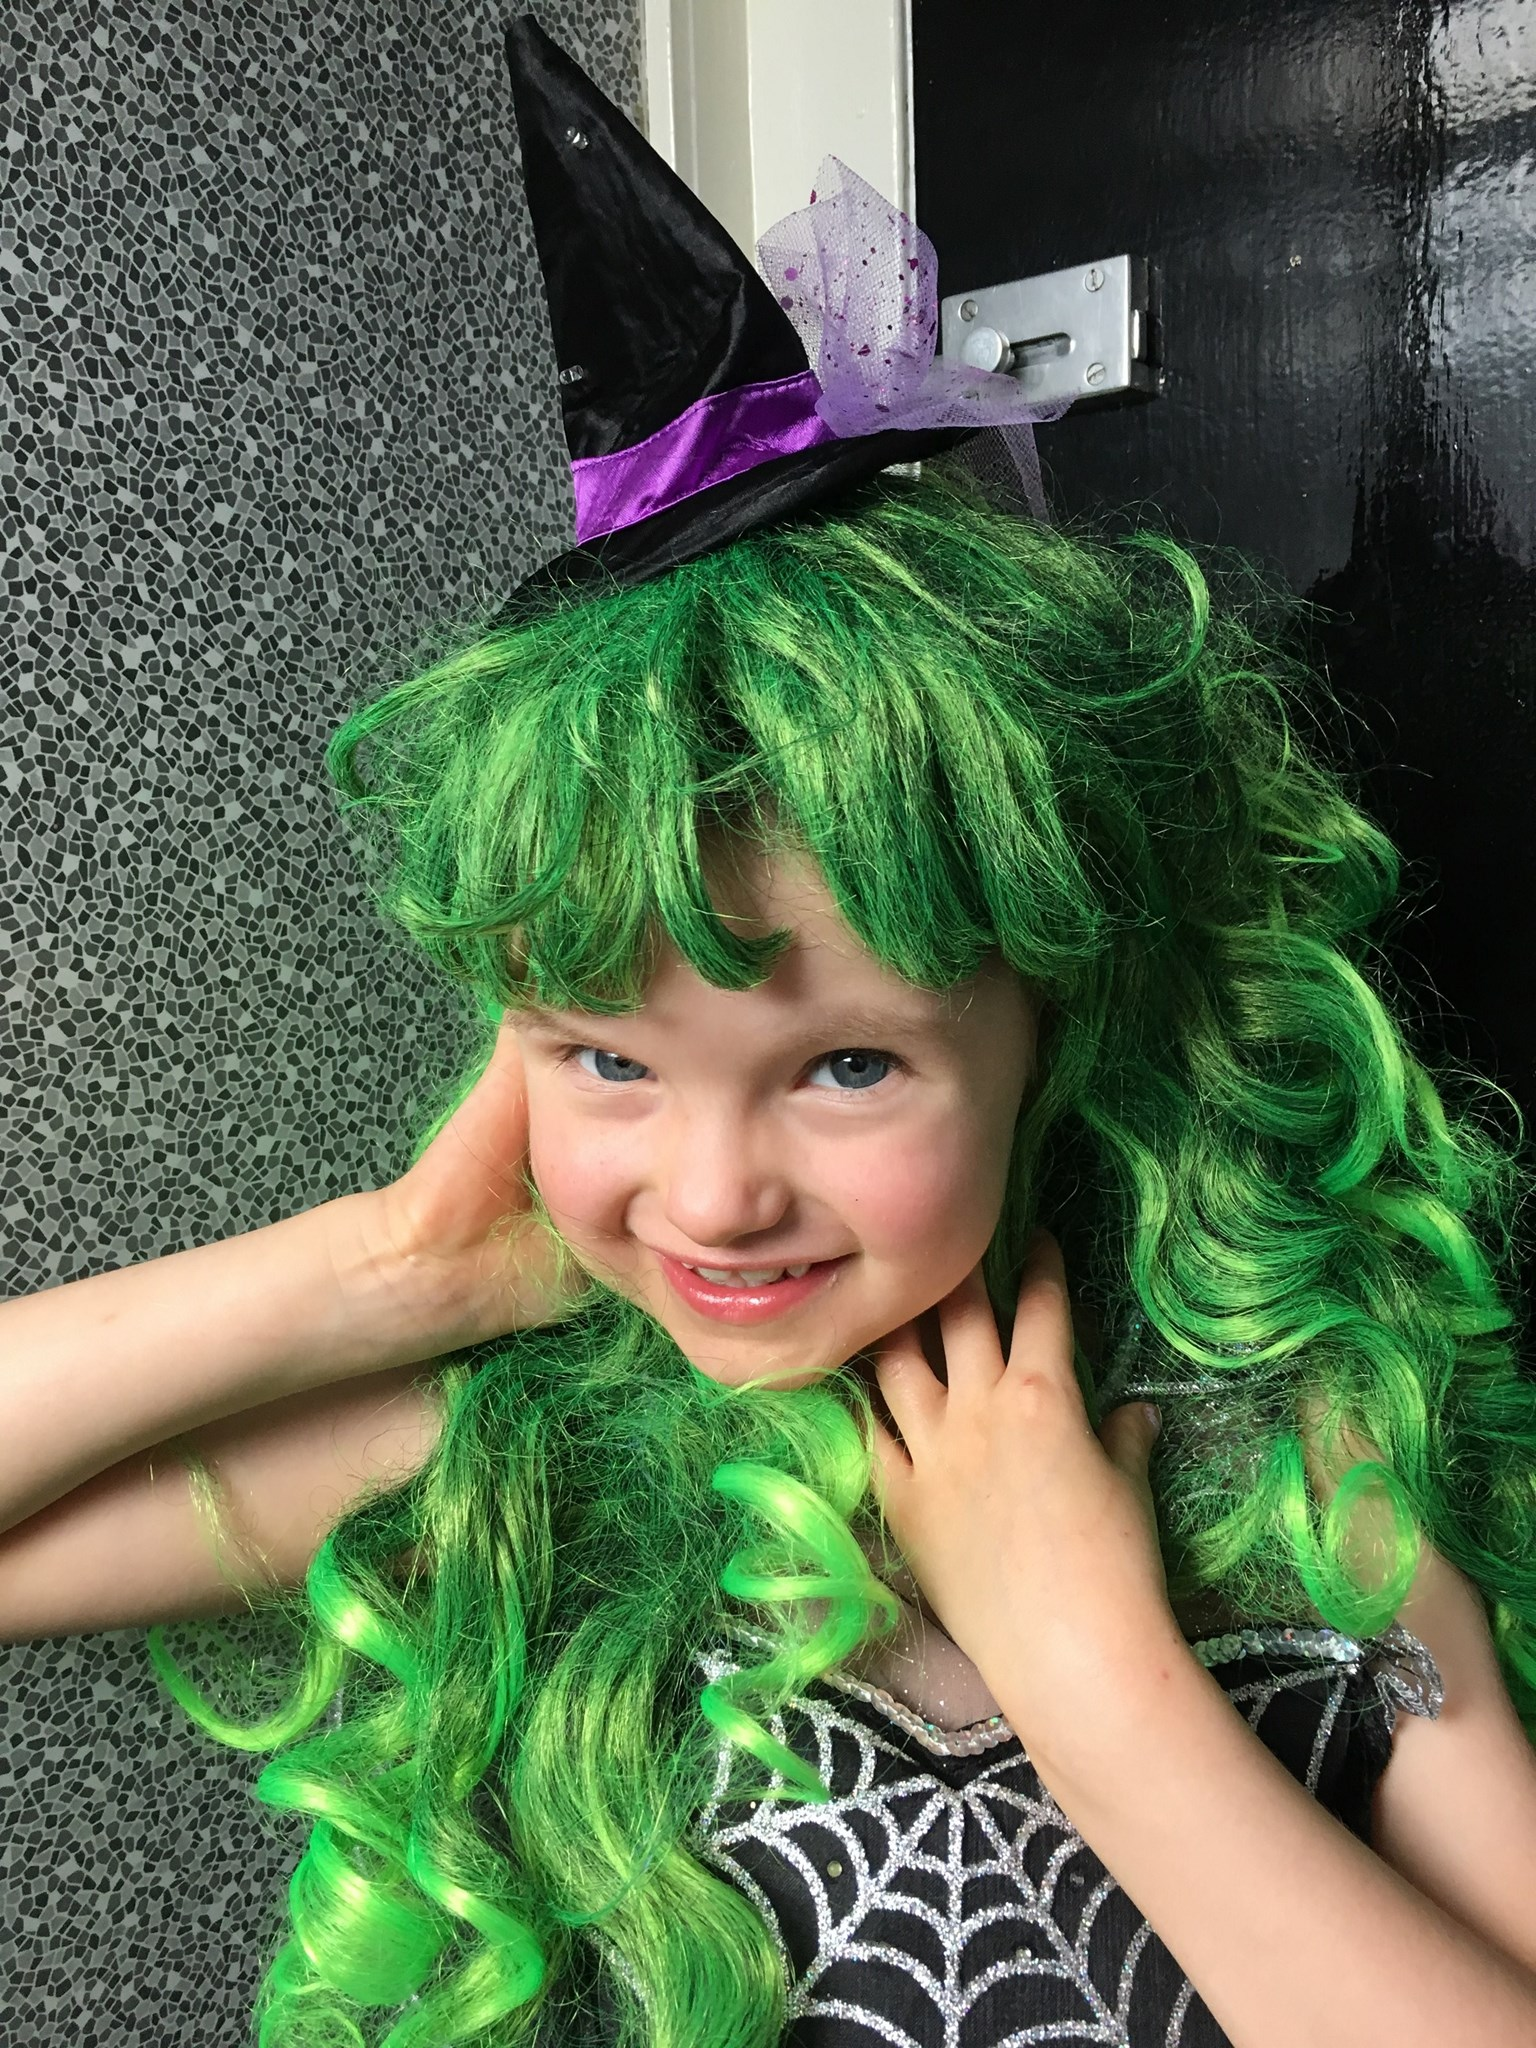 Green hair - Don't care!!